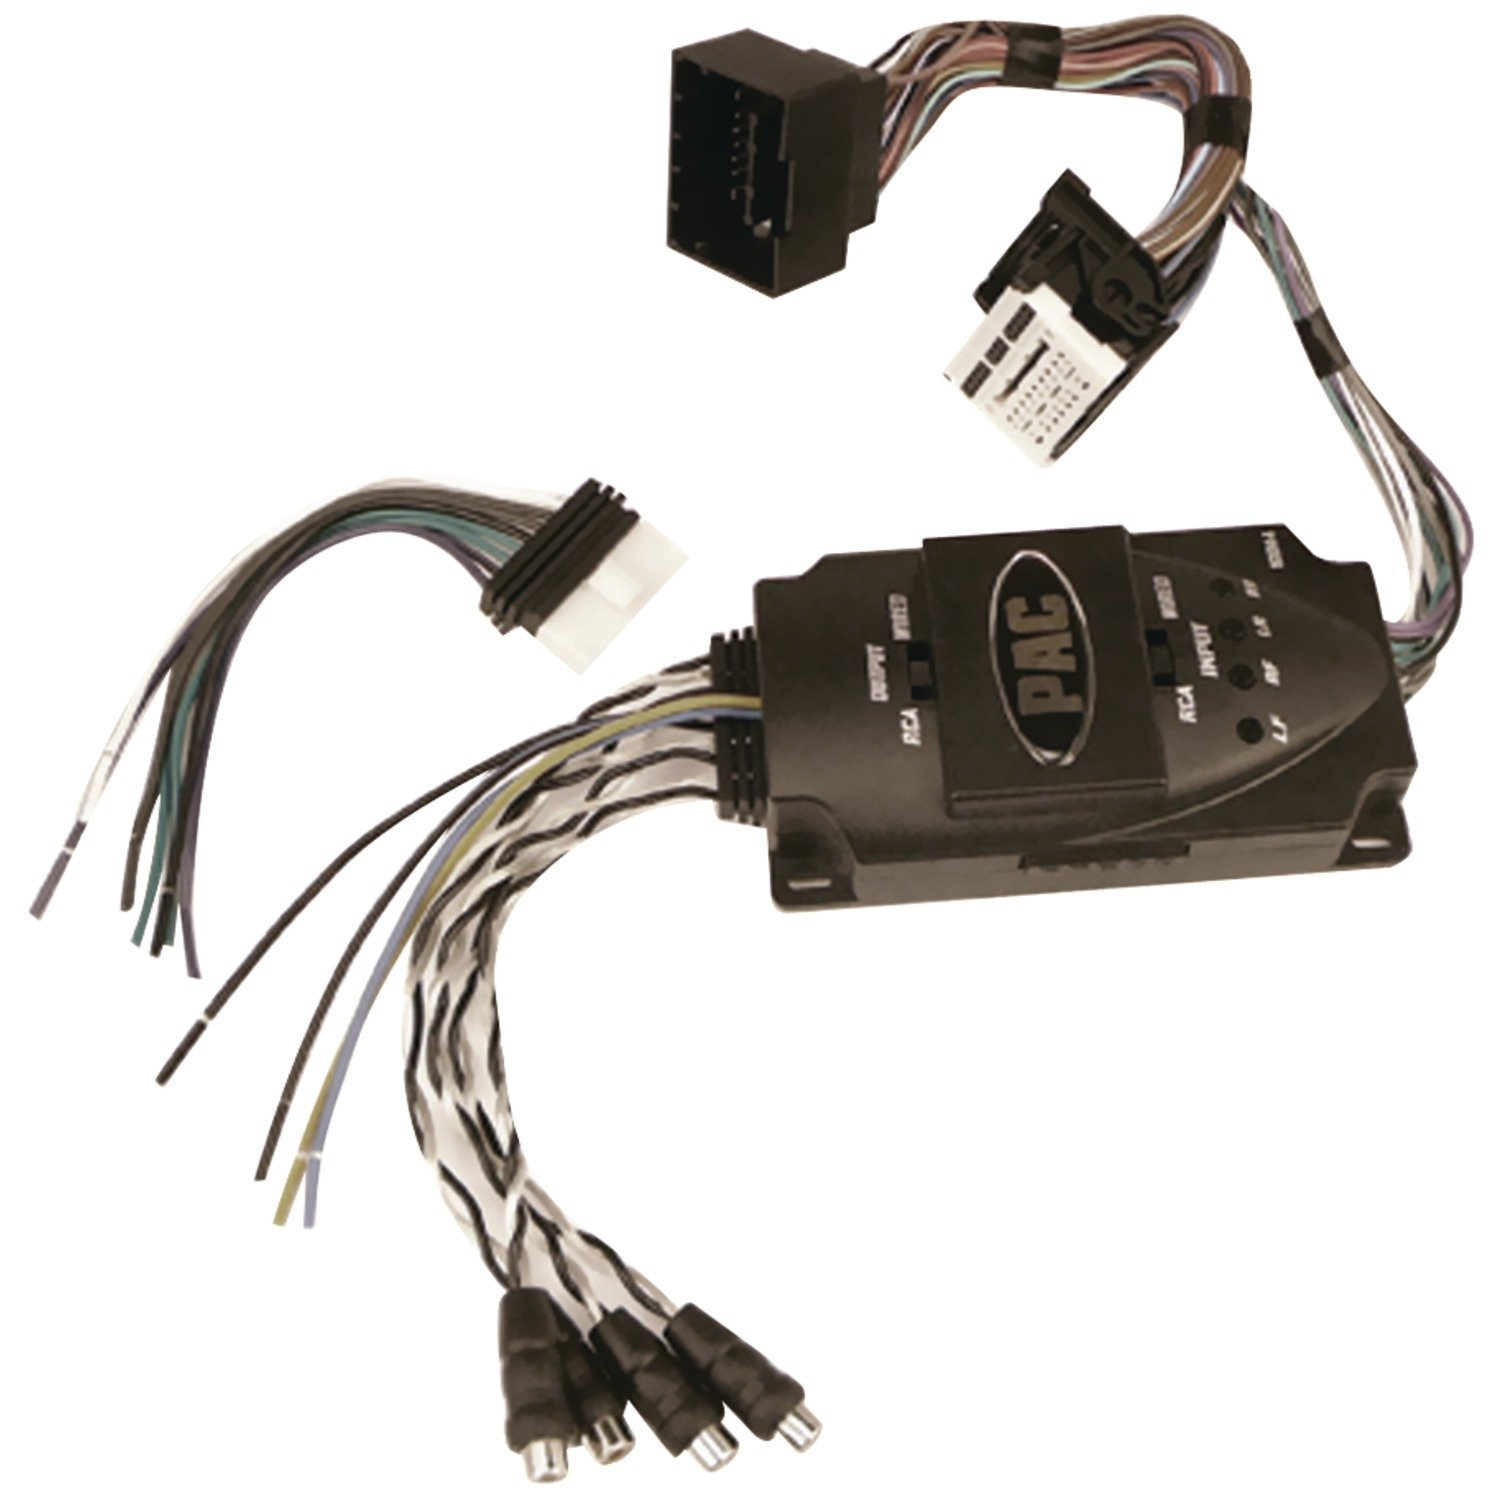 PAC AA-GM44 Amplifier Integration Interface for Select 2010 and Up GM Vehicles PACIFIC ACCESSORY CORP